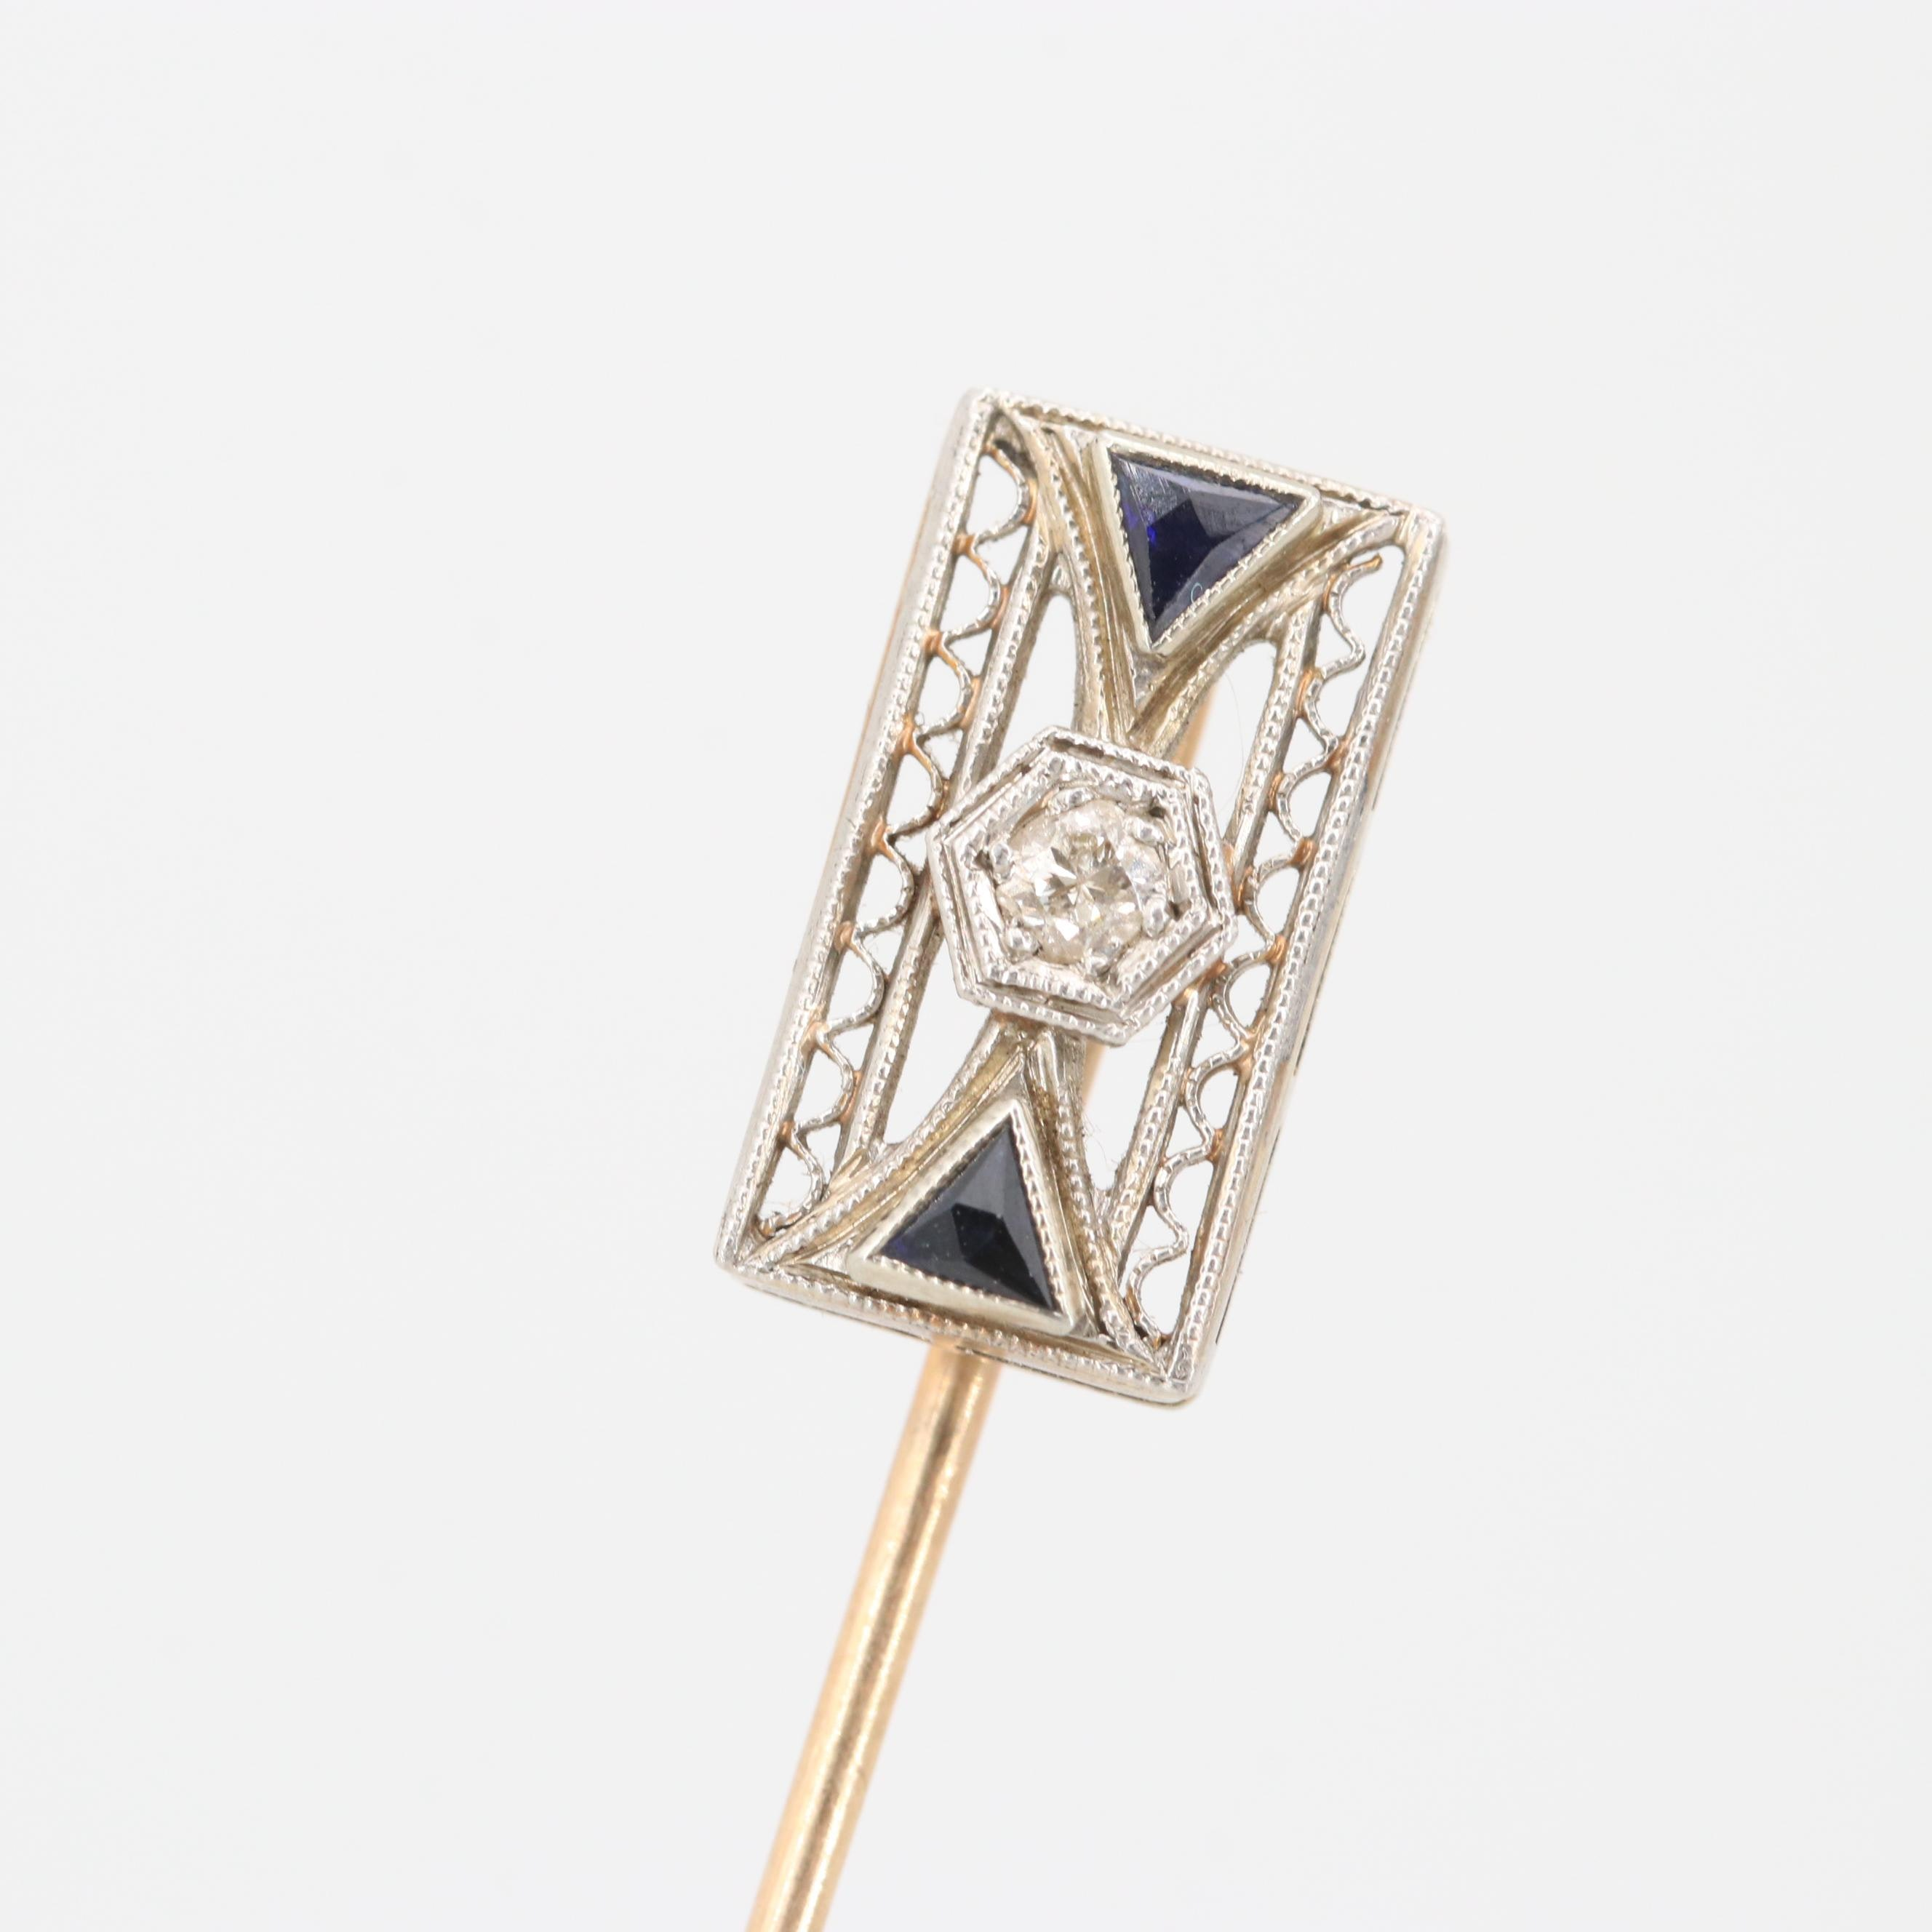 Art Deco 14K Gold Diamond and Synthetic Sapphire Stick Pin with Platinum Top